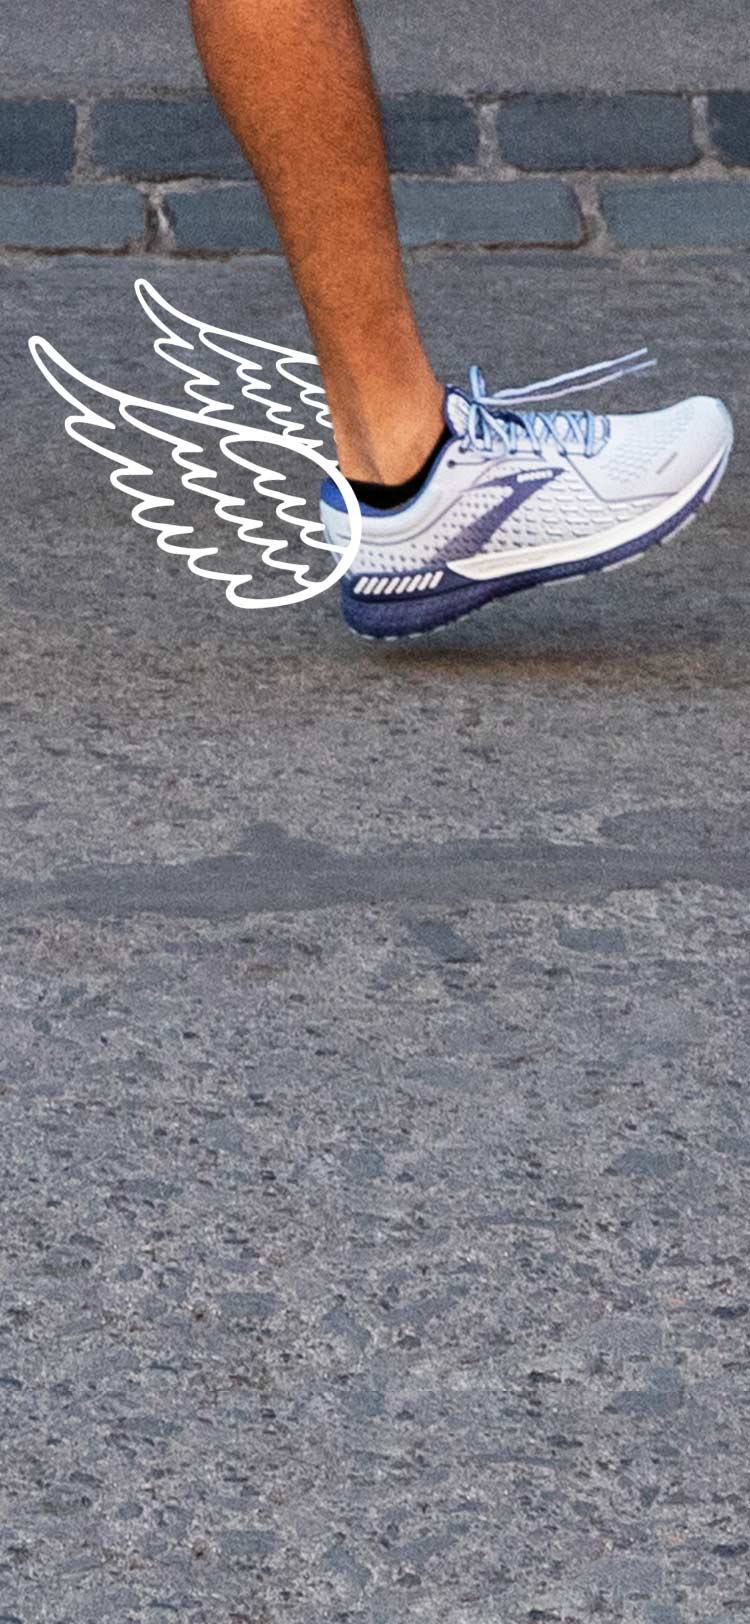 An image of a man from the knee down running outdoors in Brooks Adrenaline GTS 21 shoes with wing graphics that depict a smooth run